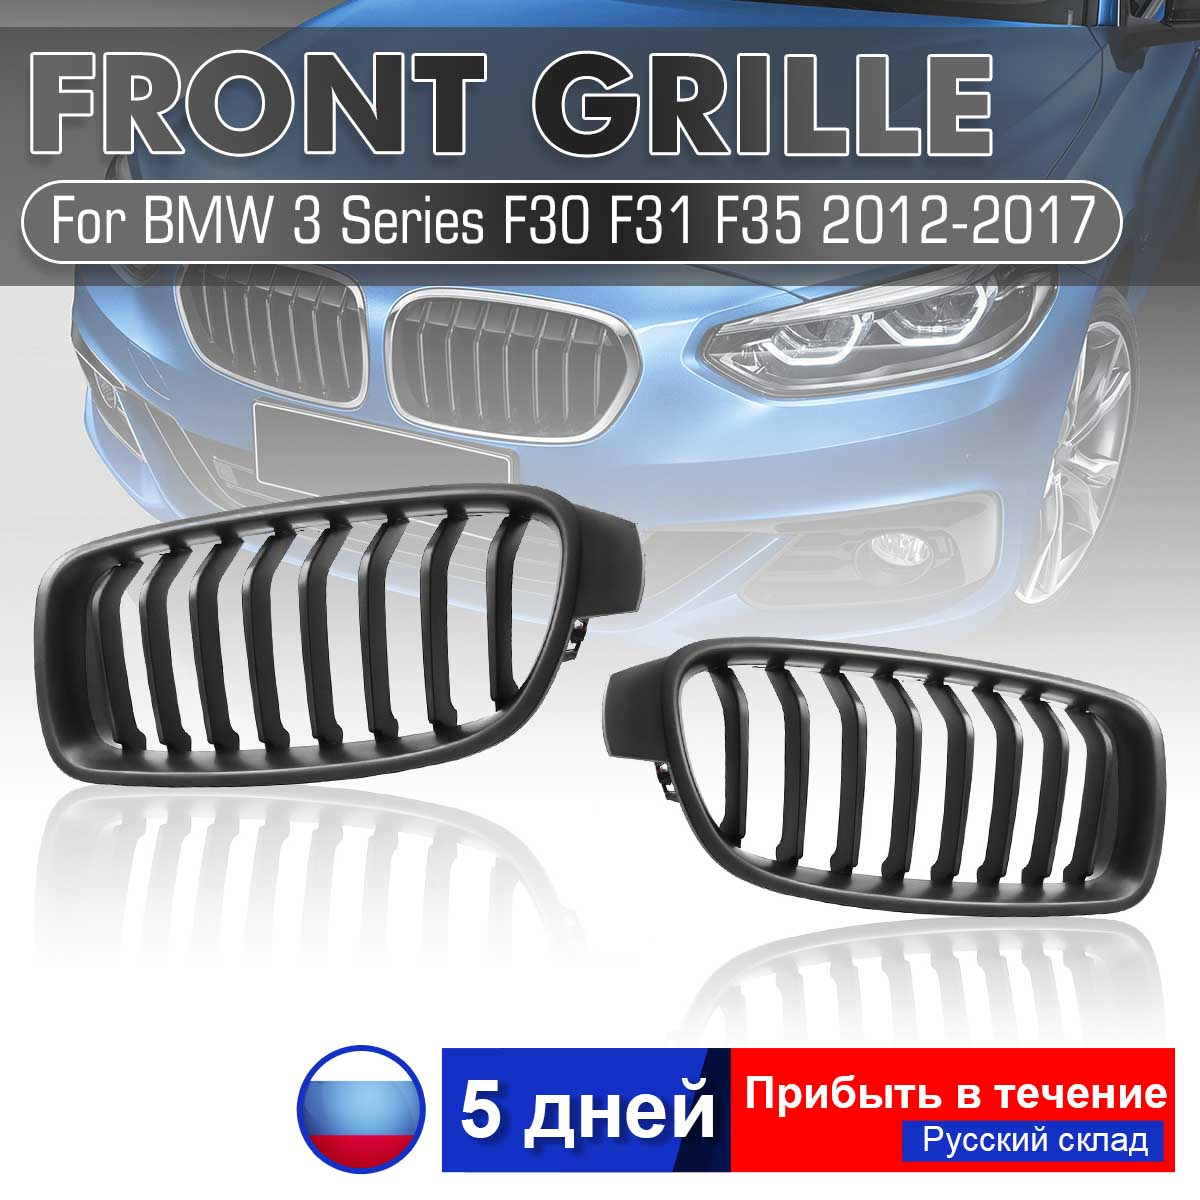 2PCS ABS grill Matte black kidney grille styling bumper grill For BMW 3 Series F30 F31 F35 2012 2013 2014 2015 2016 20172PCS ABS grill Matte black kidney grille styling bumper grill For BMW 3 Series F30 F31 F35 2012 2013 2014 2015 2016 2017